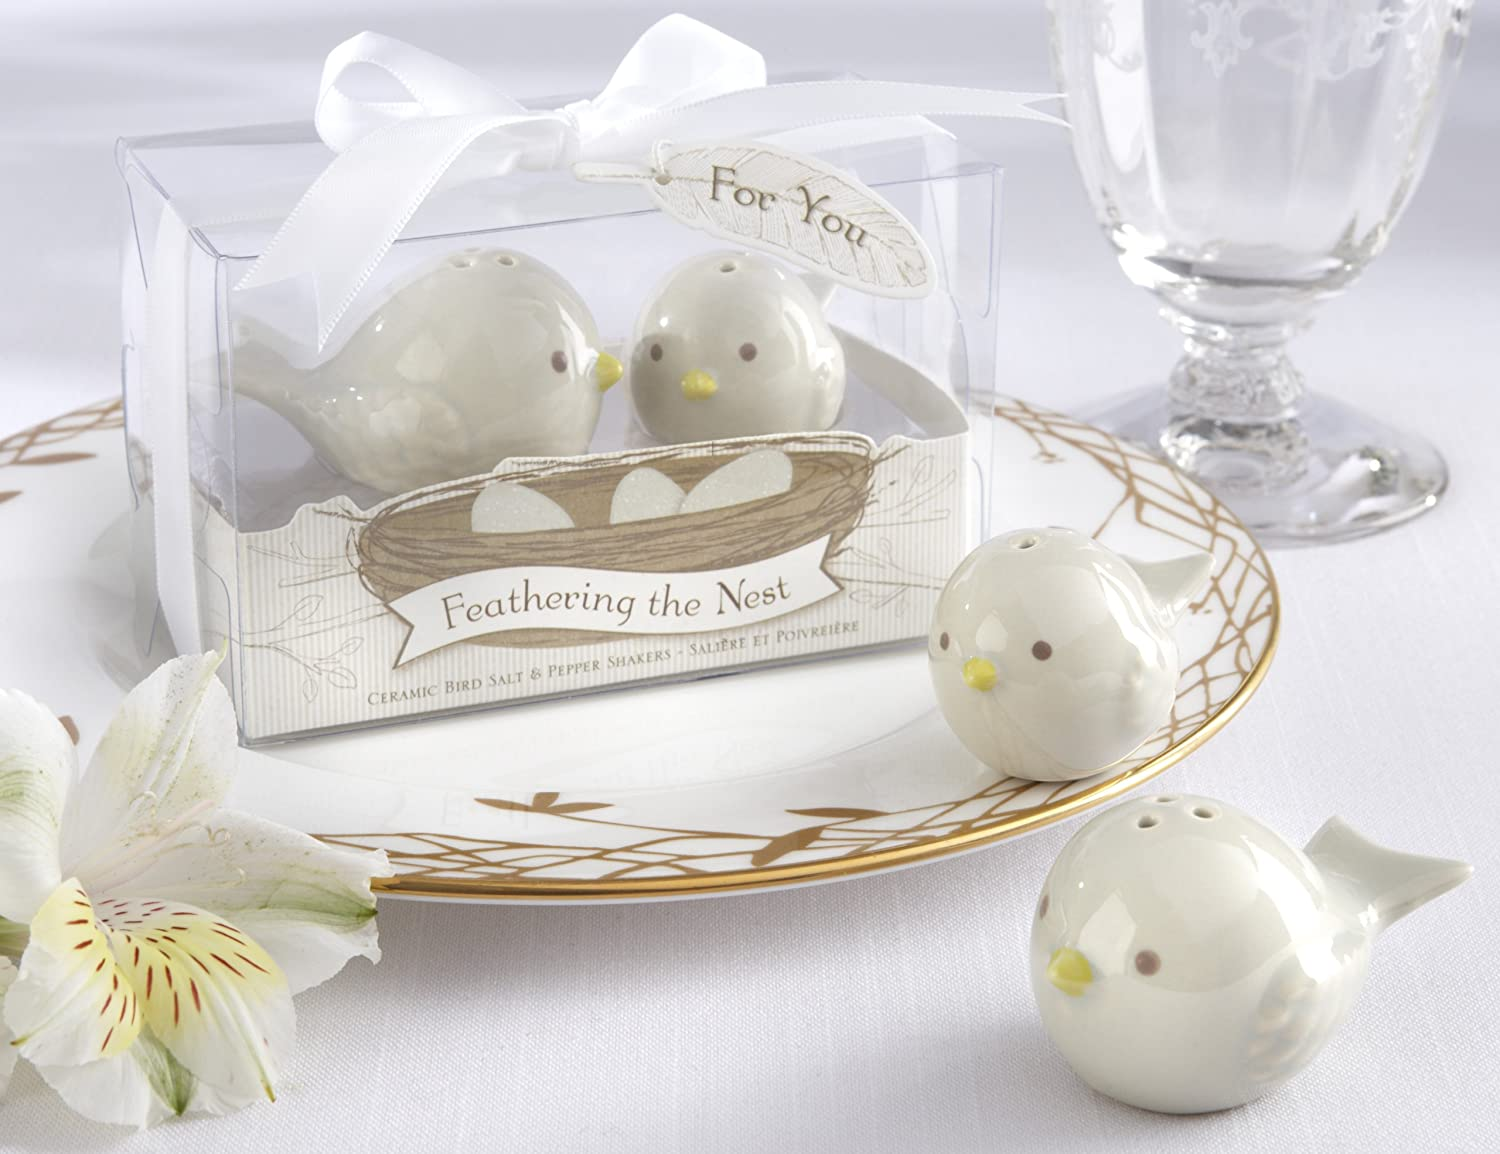 Amazon.com: Kate Aspen Feathering The Nest Ceramic Birds Salt and ...